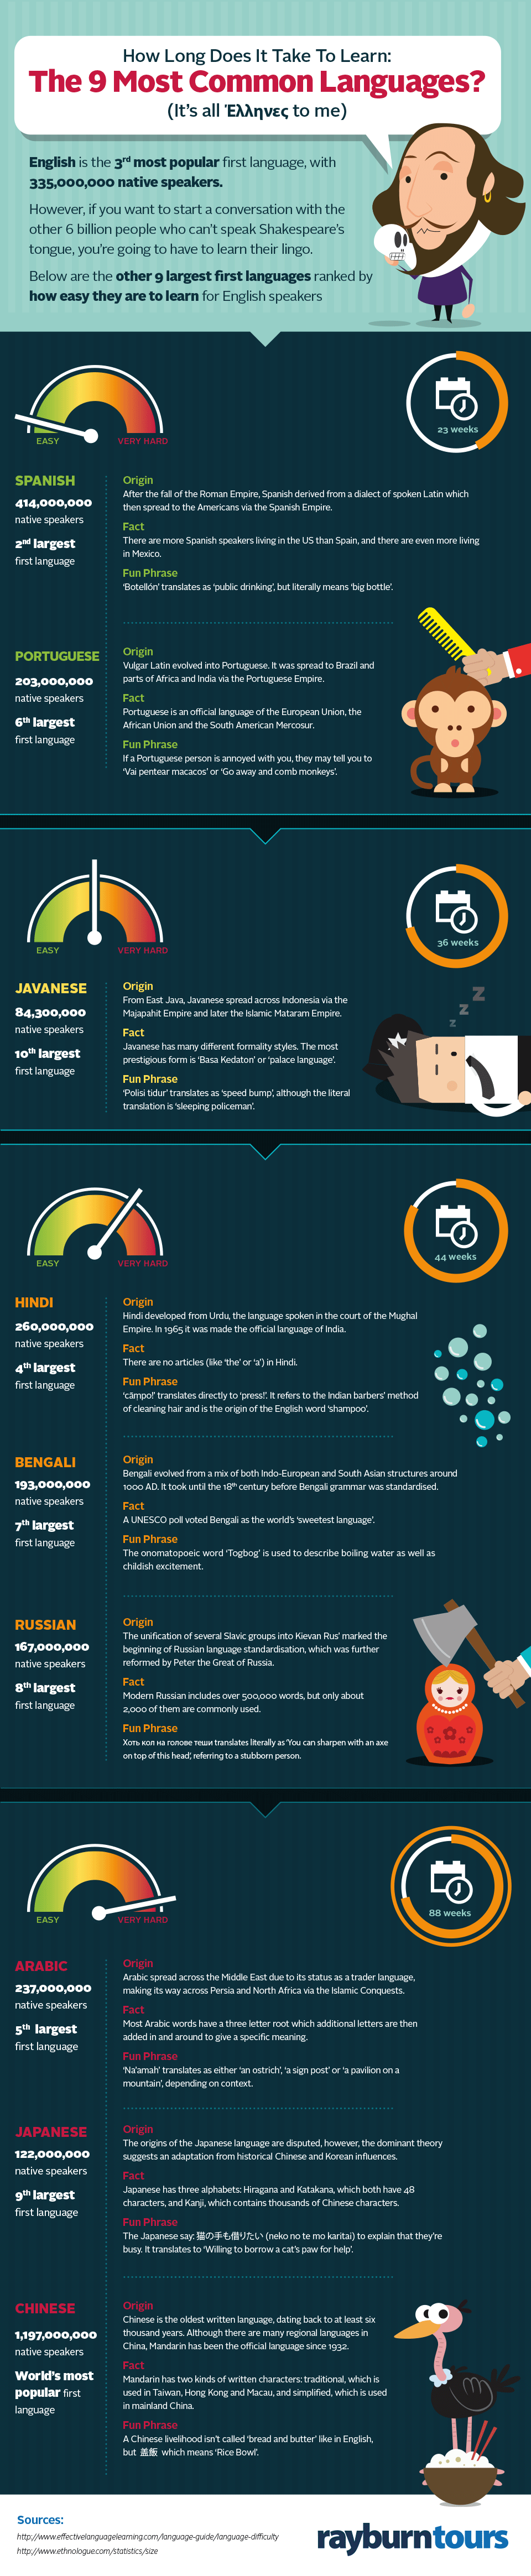 How Long Does It Take To Learn: The 9 Most Common Languages #infographic